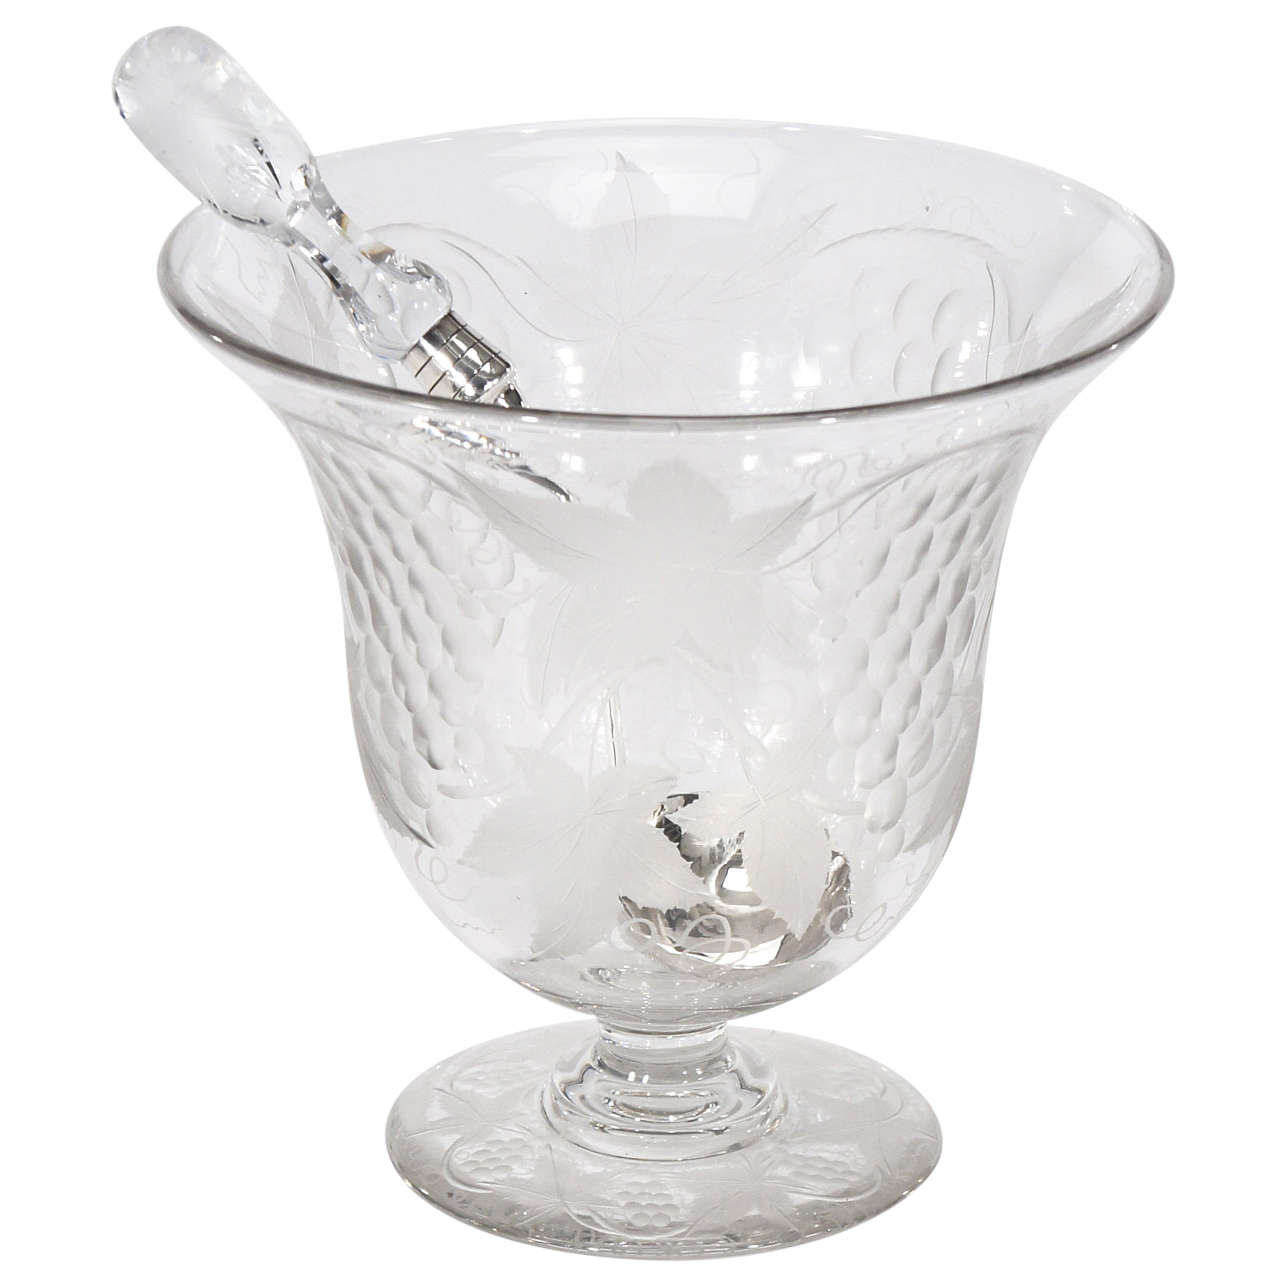 Rare Pairpoint Wheel Cut Crystal Punchbowl with Matching Signed Ladle